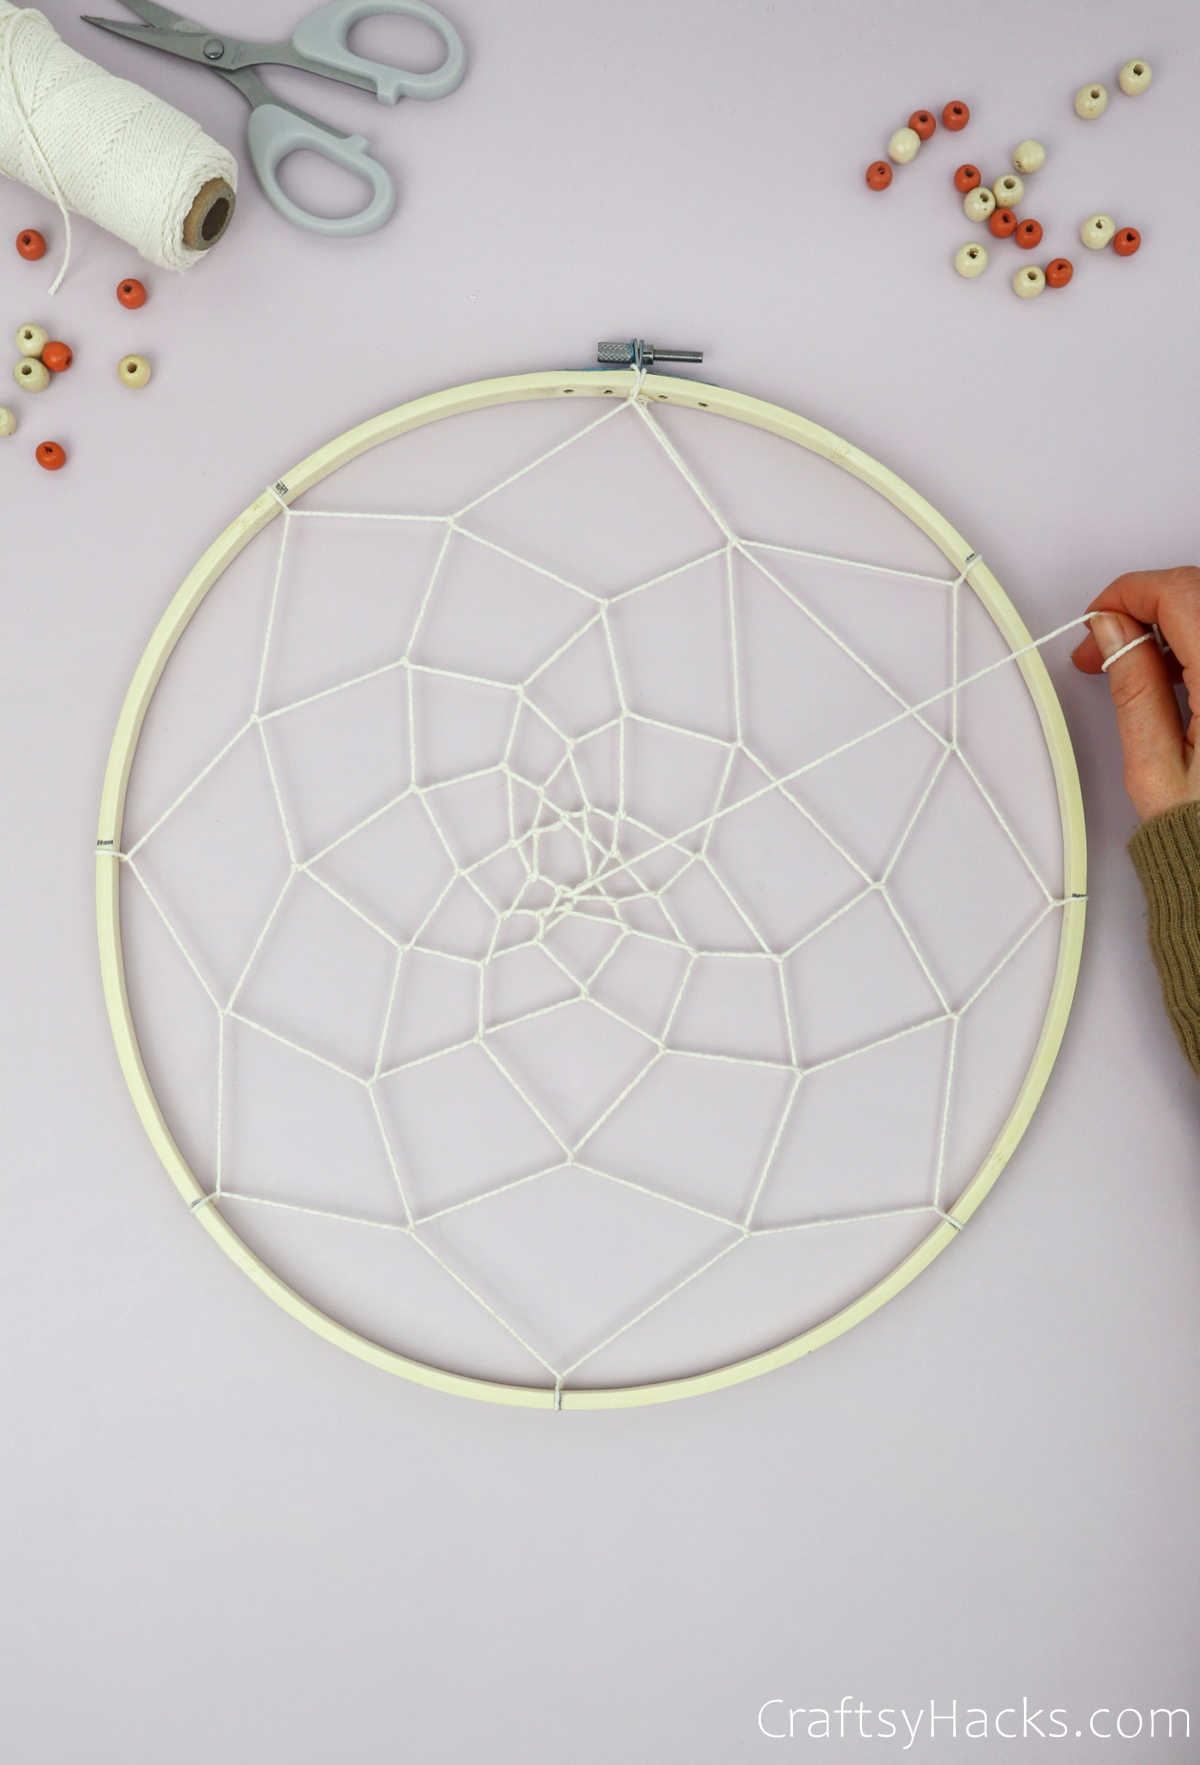 attaching string in middle of hoop